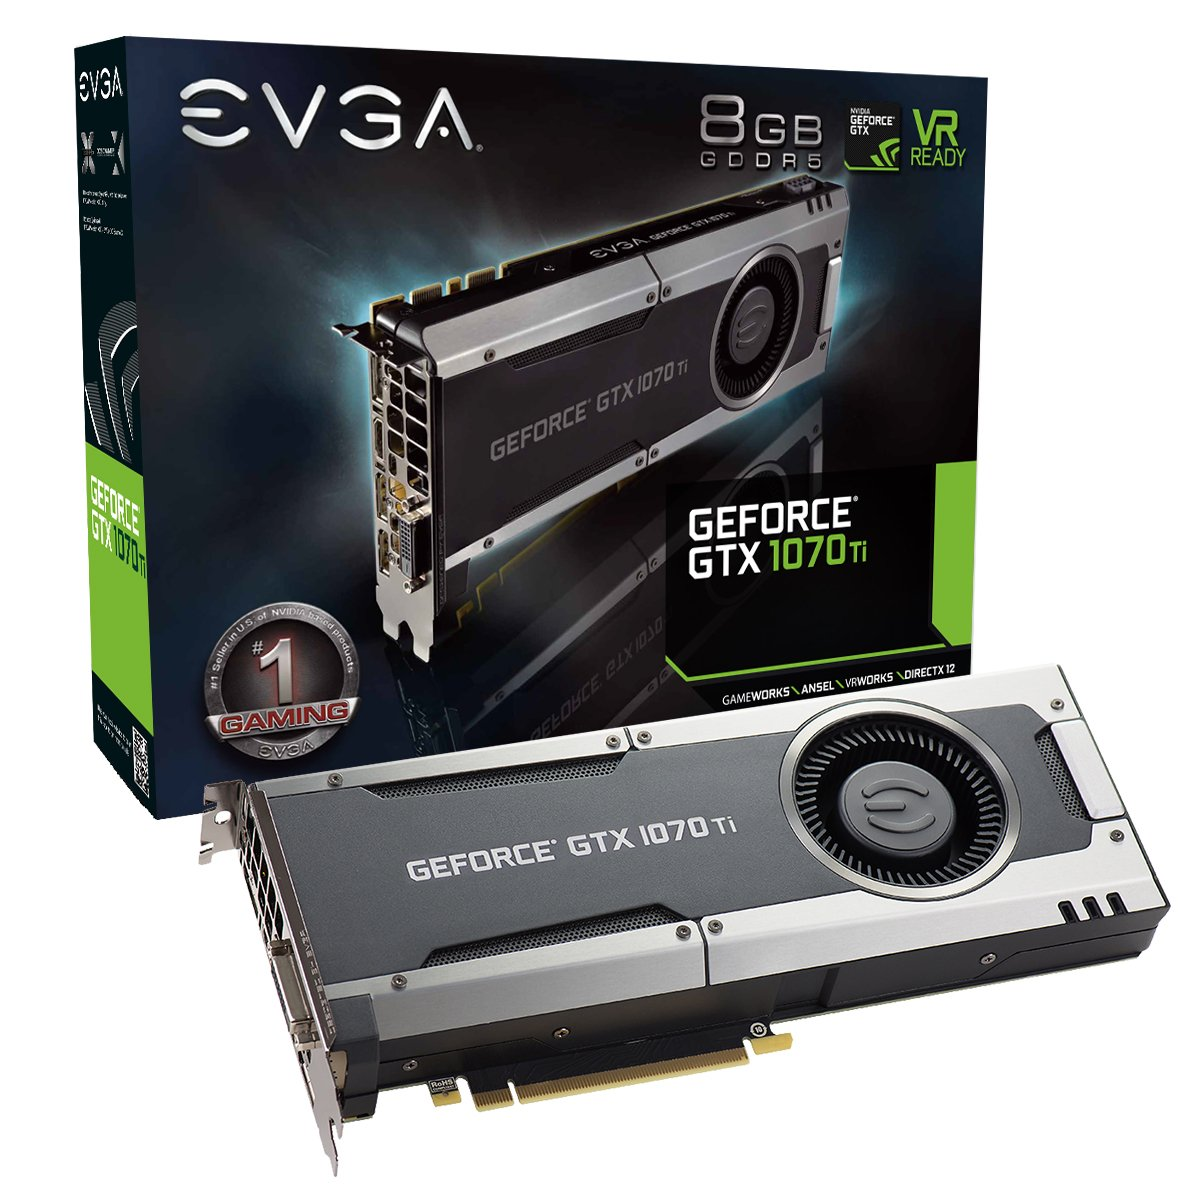 EVGA GeForce GTX 1070 Ti GAMING, 8GB GDDR5, EVGA OCX Scanner OC, White LED, DX12OSD Support (PXOC) Graphics Card 08G-P4-5670-KR